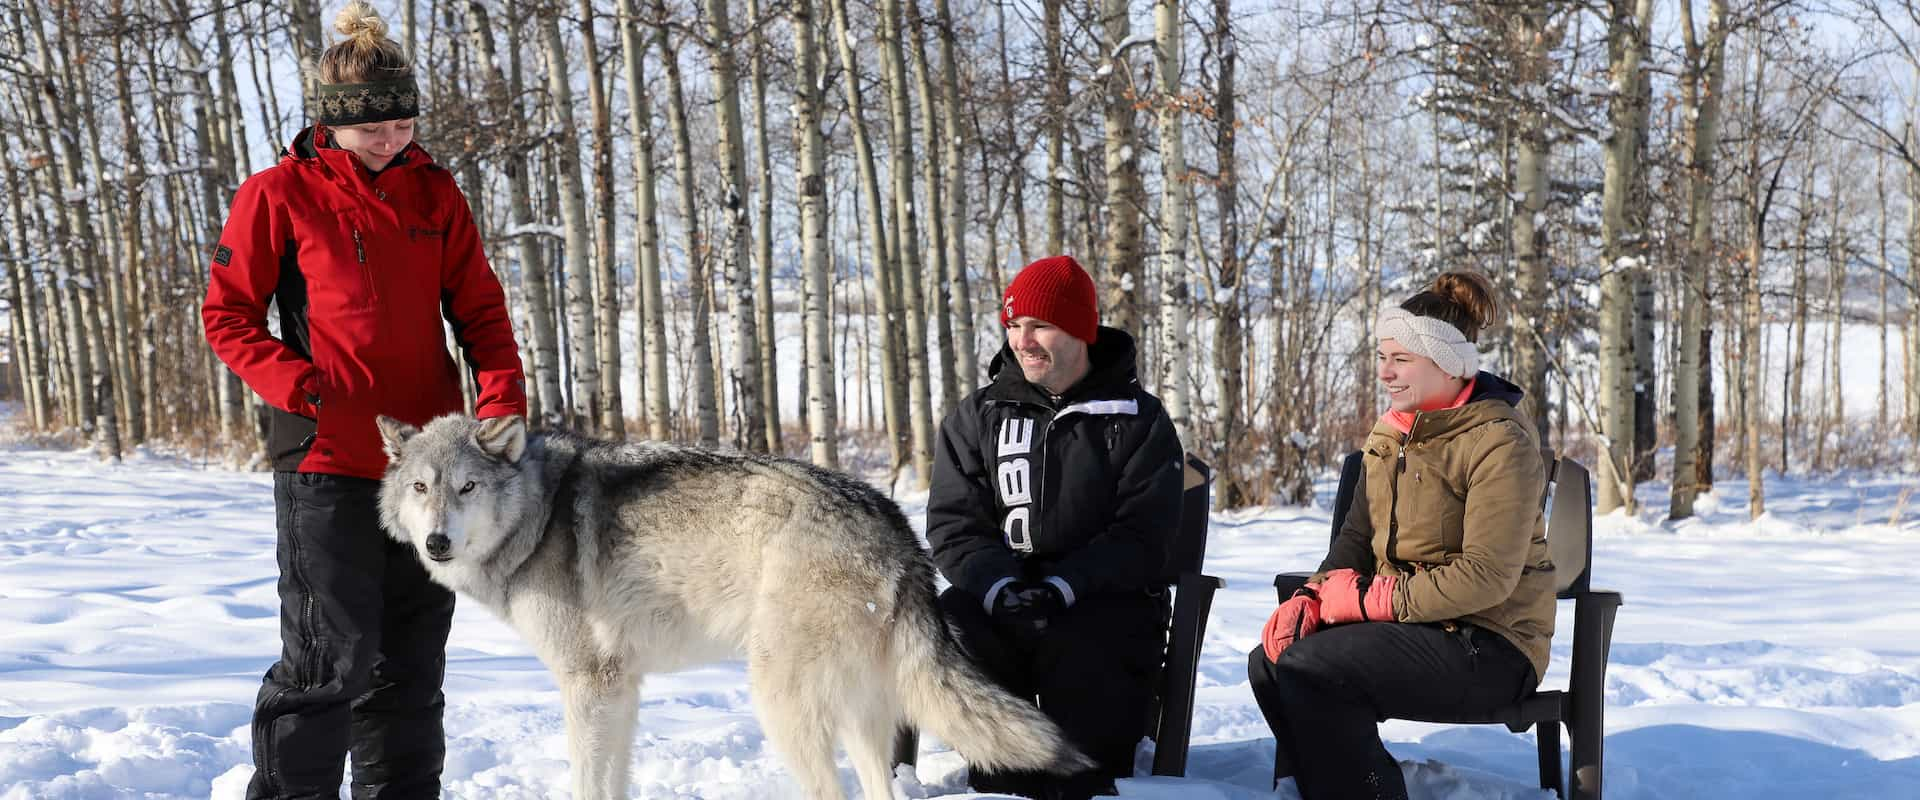 Meet wolfdogs on the interactive tour at the Yamnuska Wolfdog Sanctuary